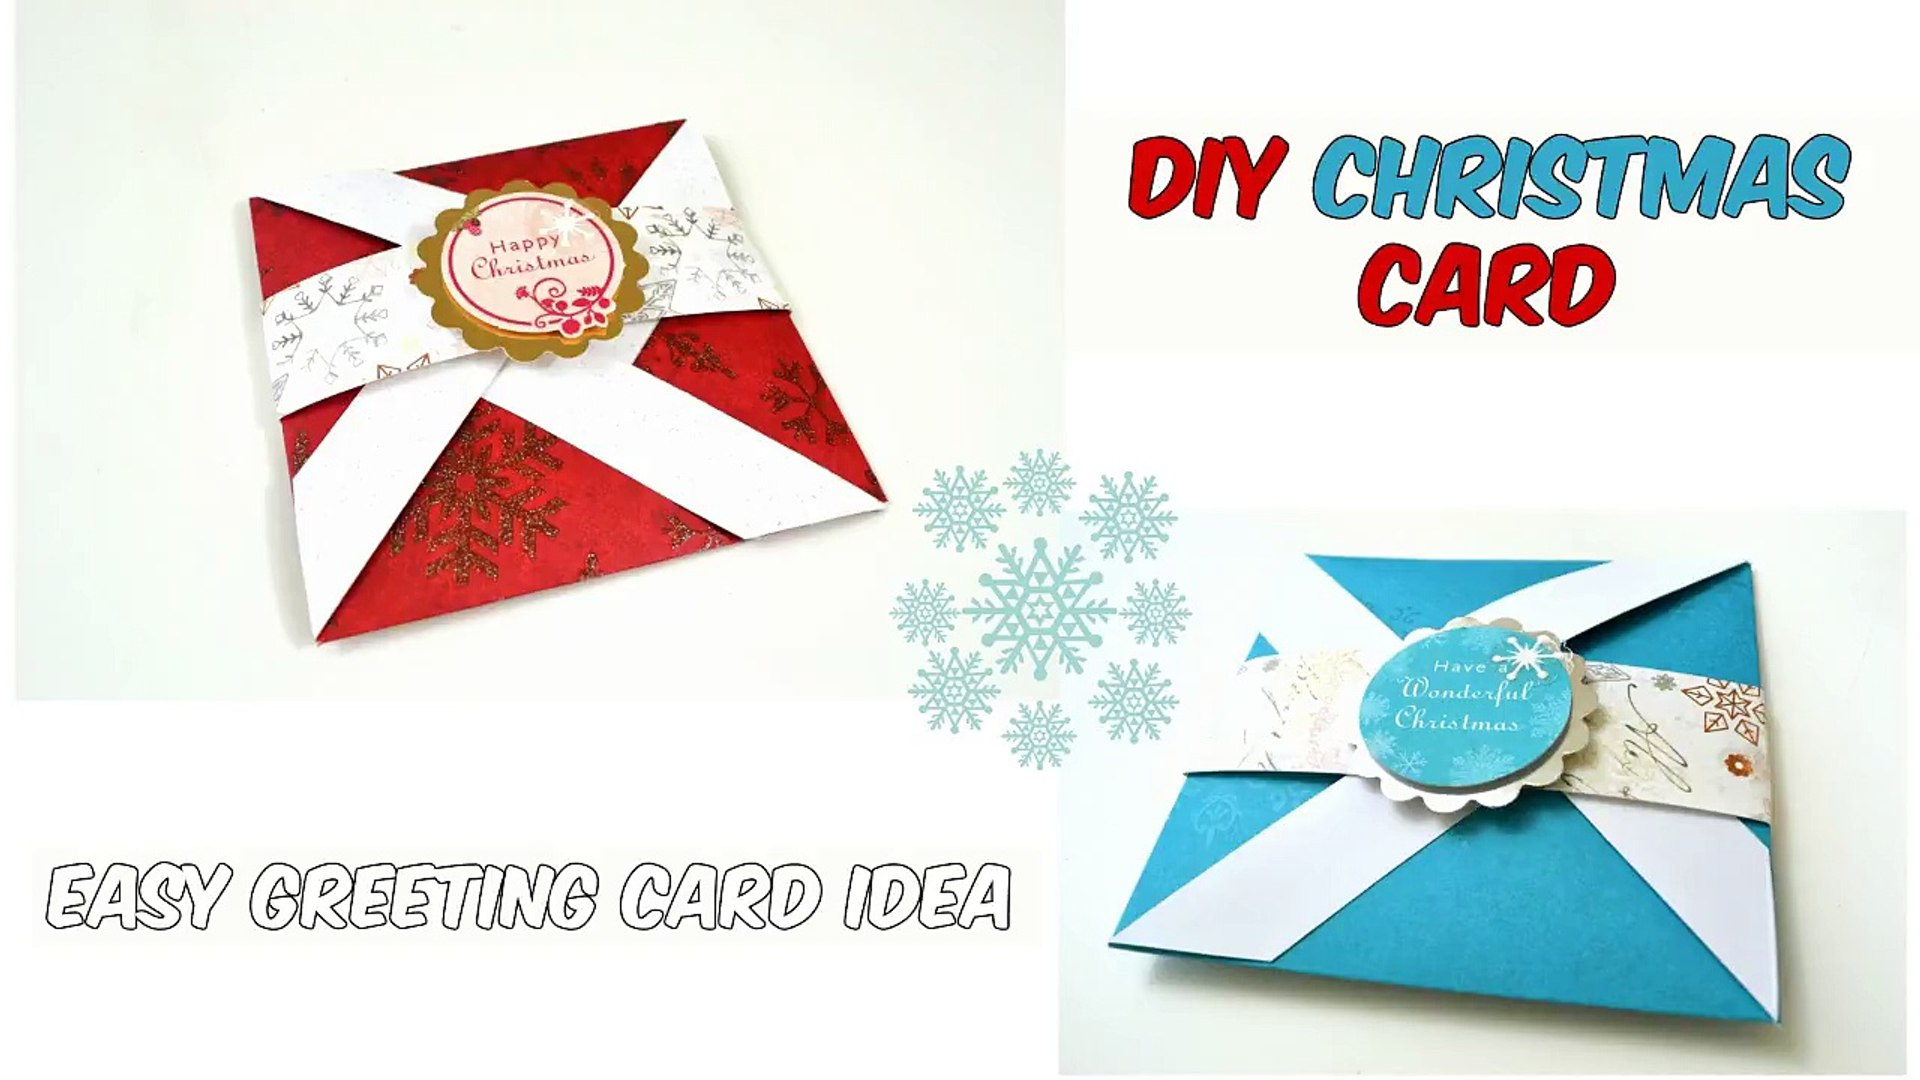 Christmas Card Greeting Idea.Diy Christmas Card 1 Easy Greeting Card Ideas Paper Crafts By Giulia S Art